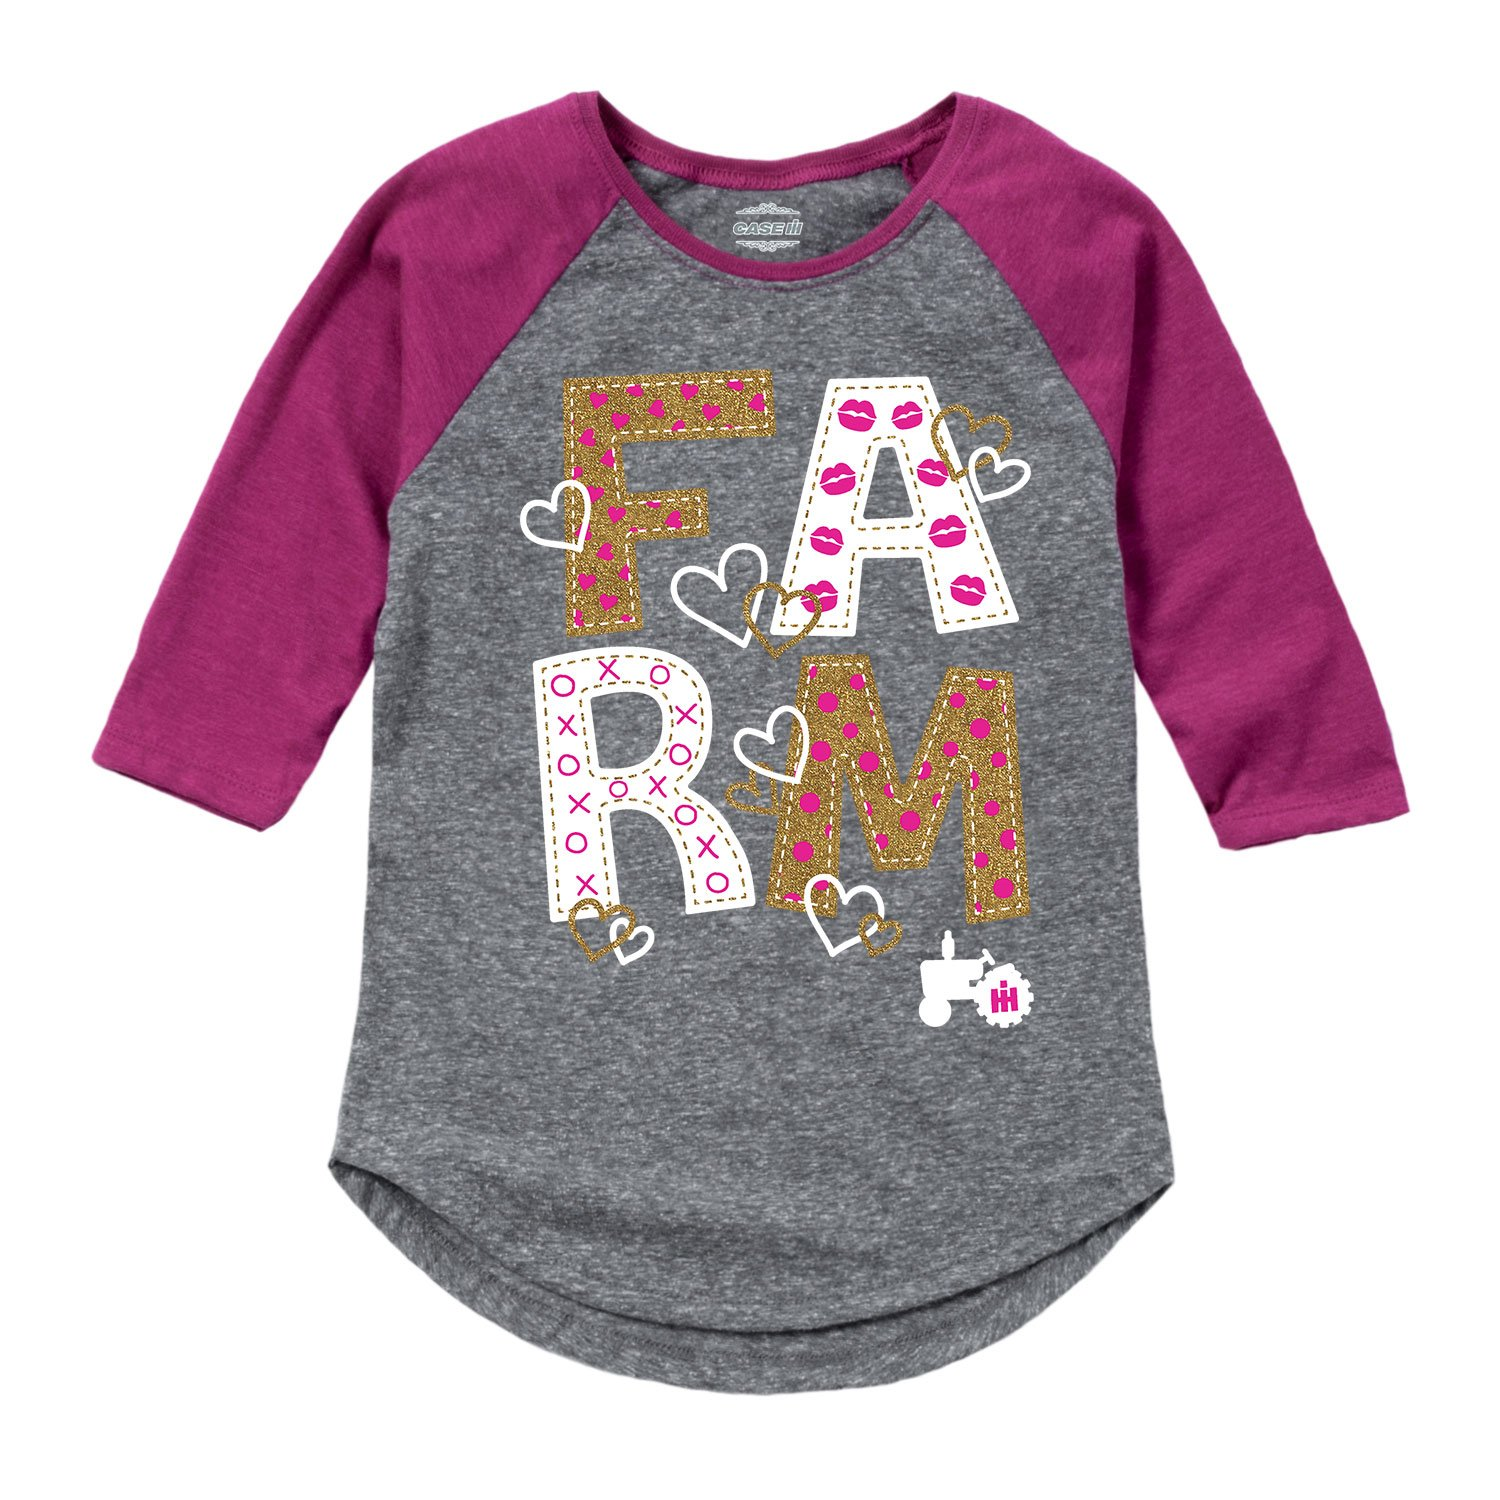 Country Casuals Farm Gold Glitter - Toddler Girl Shirt Tail Raglan Air Waves